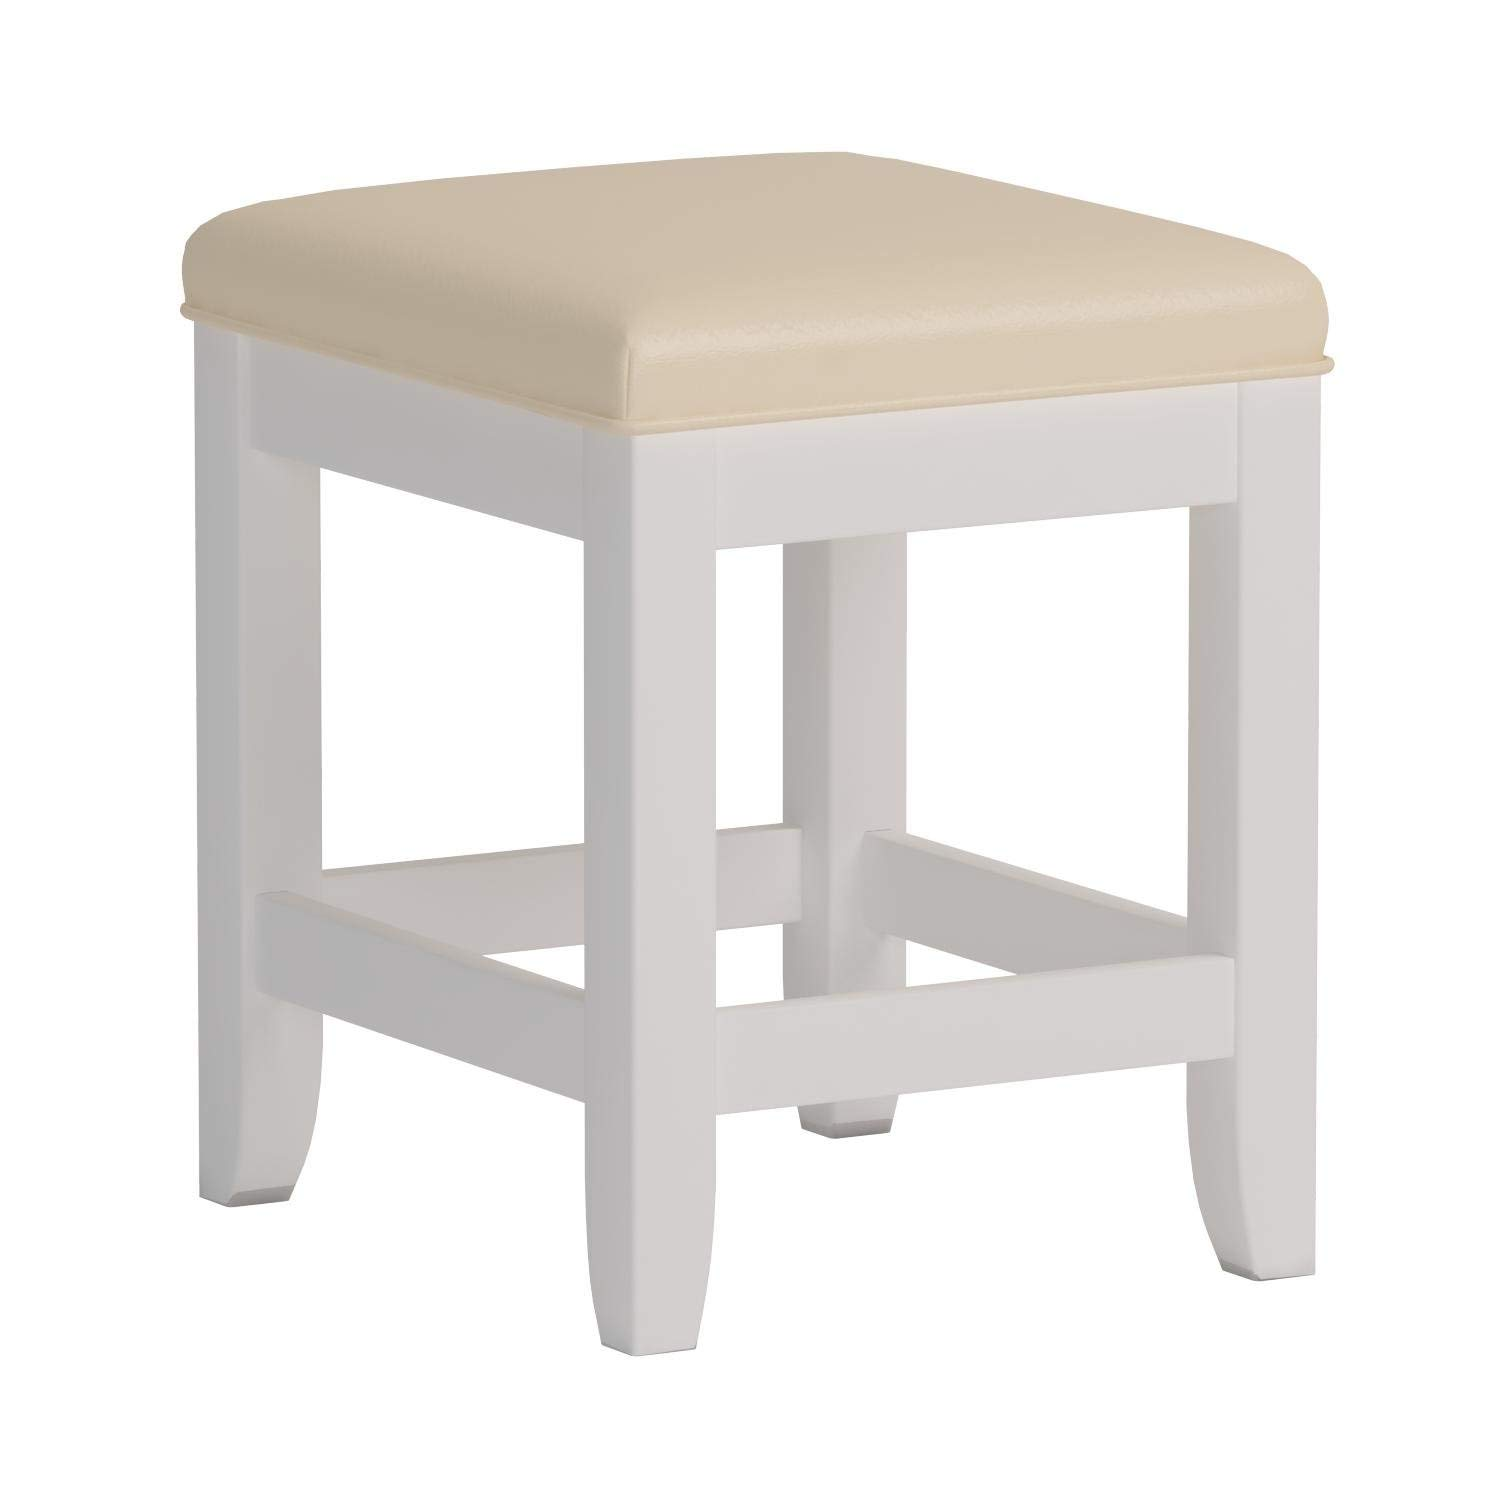 Naples White Vanity Bench by Home Styles